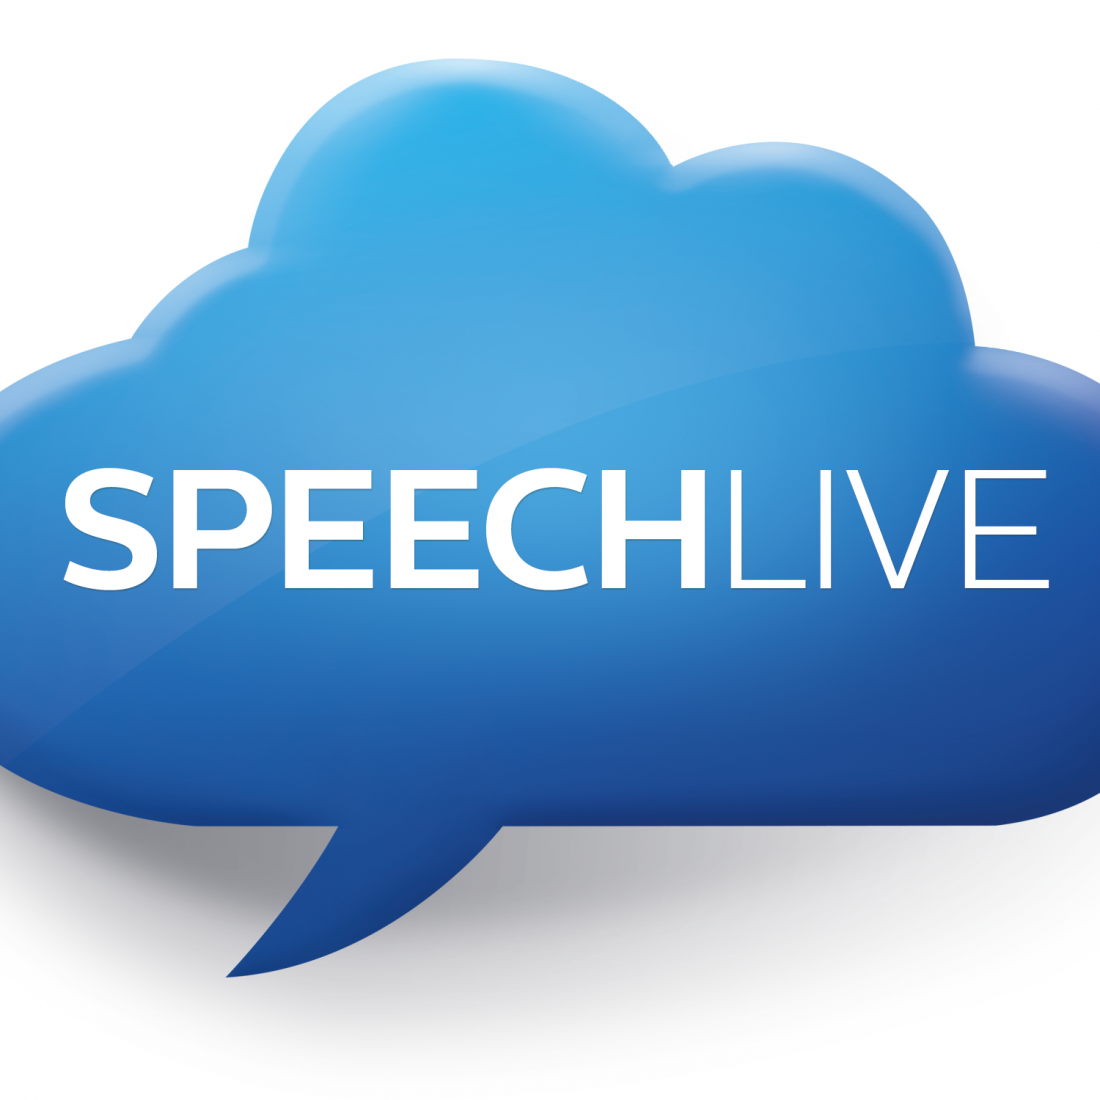 Philips SpeechLive Speech Recognition Service Per Dictation Minute* (10000min block)